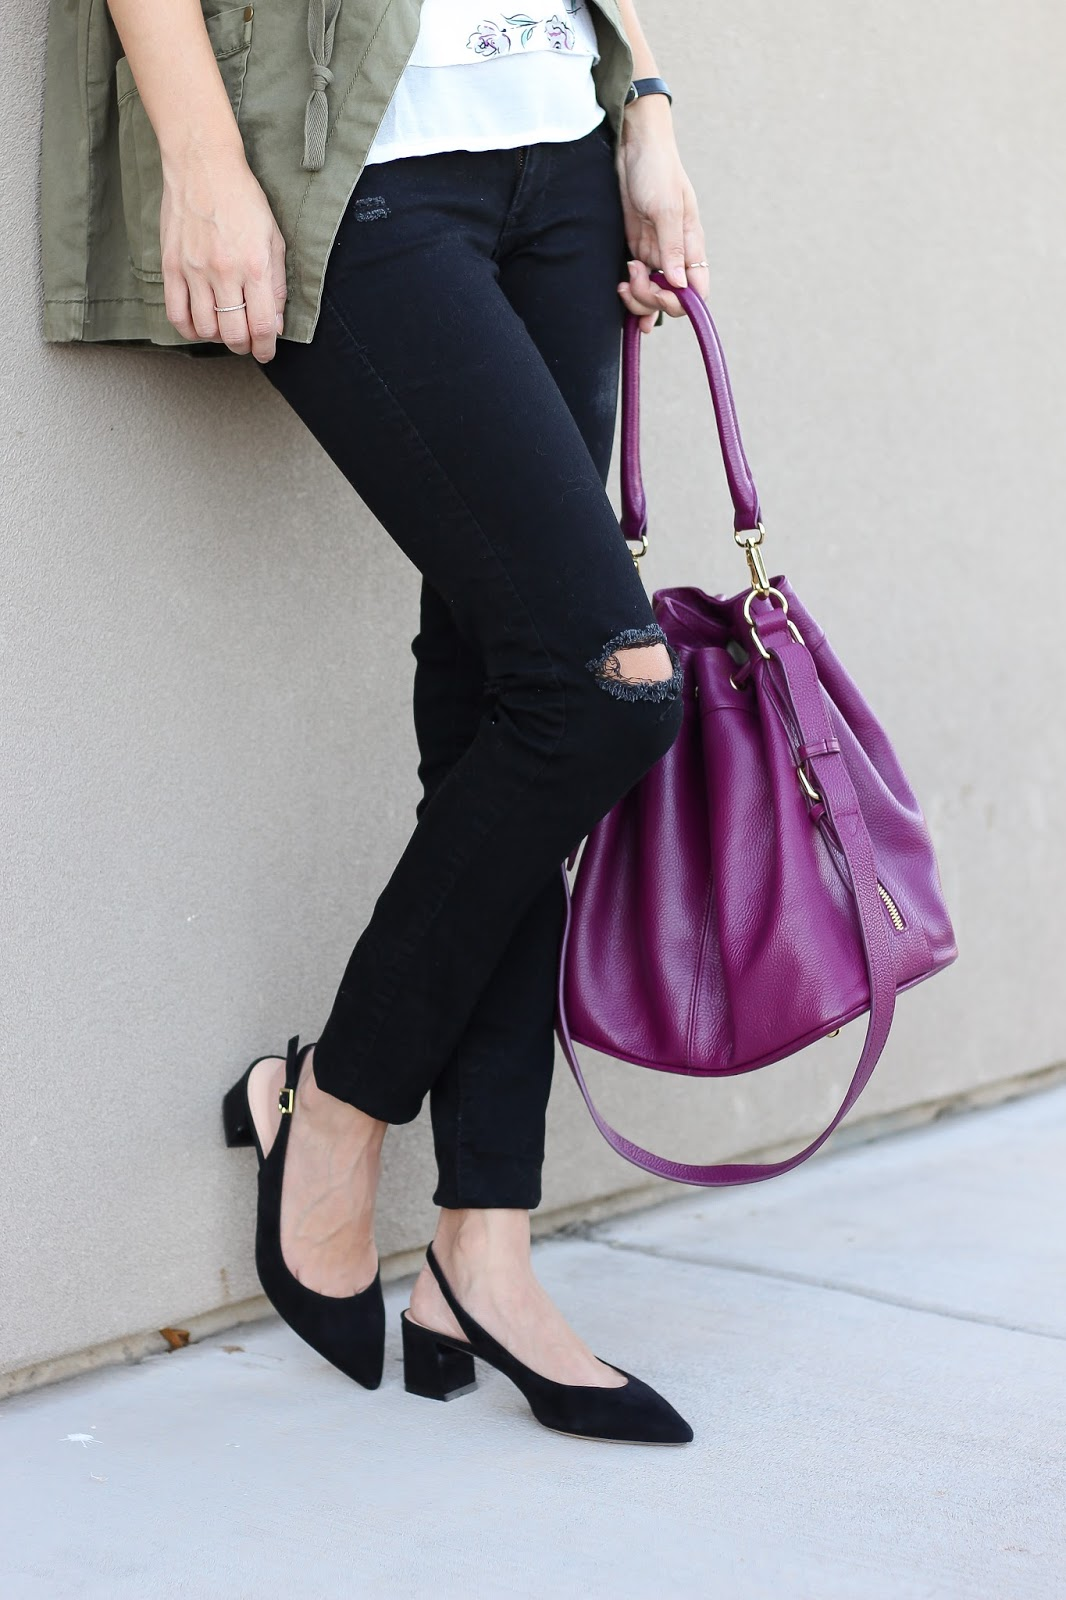 casual style - polished outfit - street style